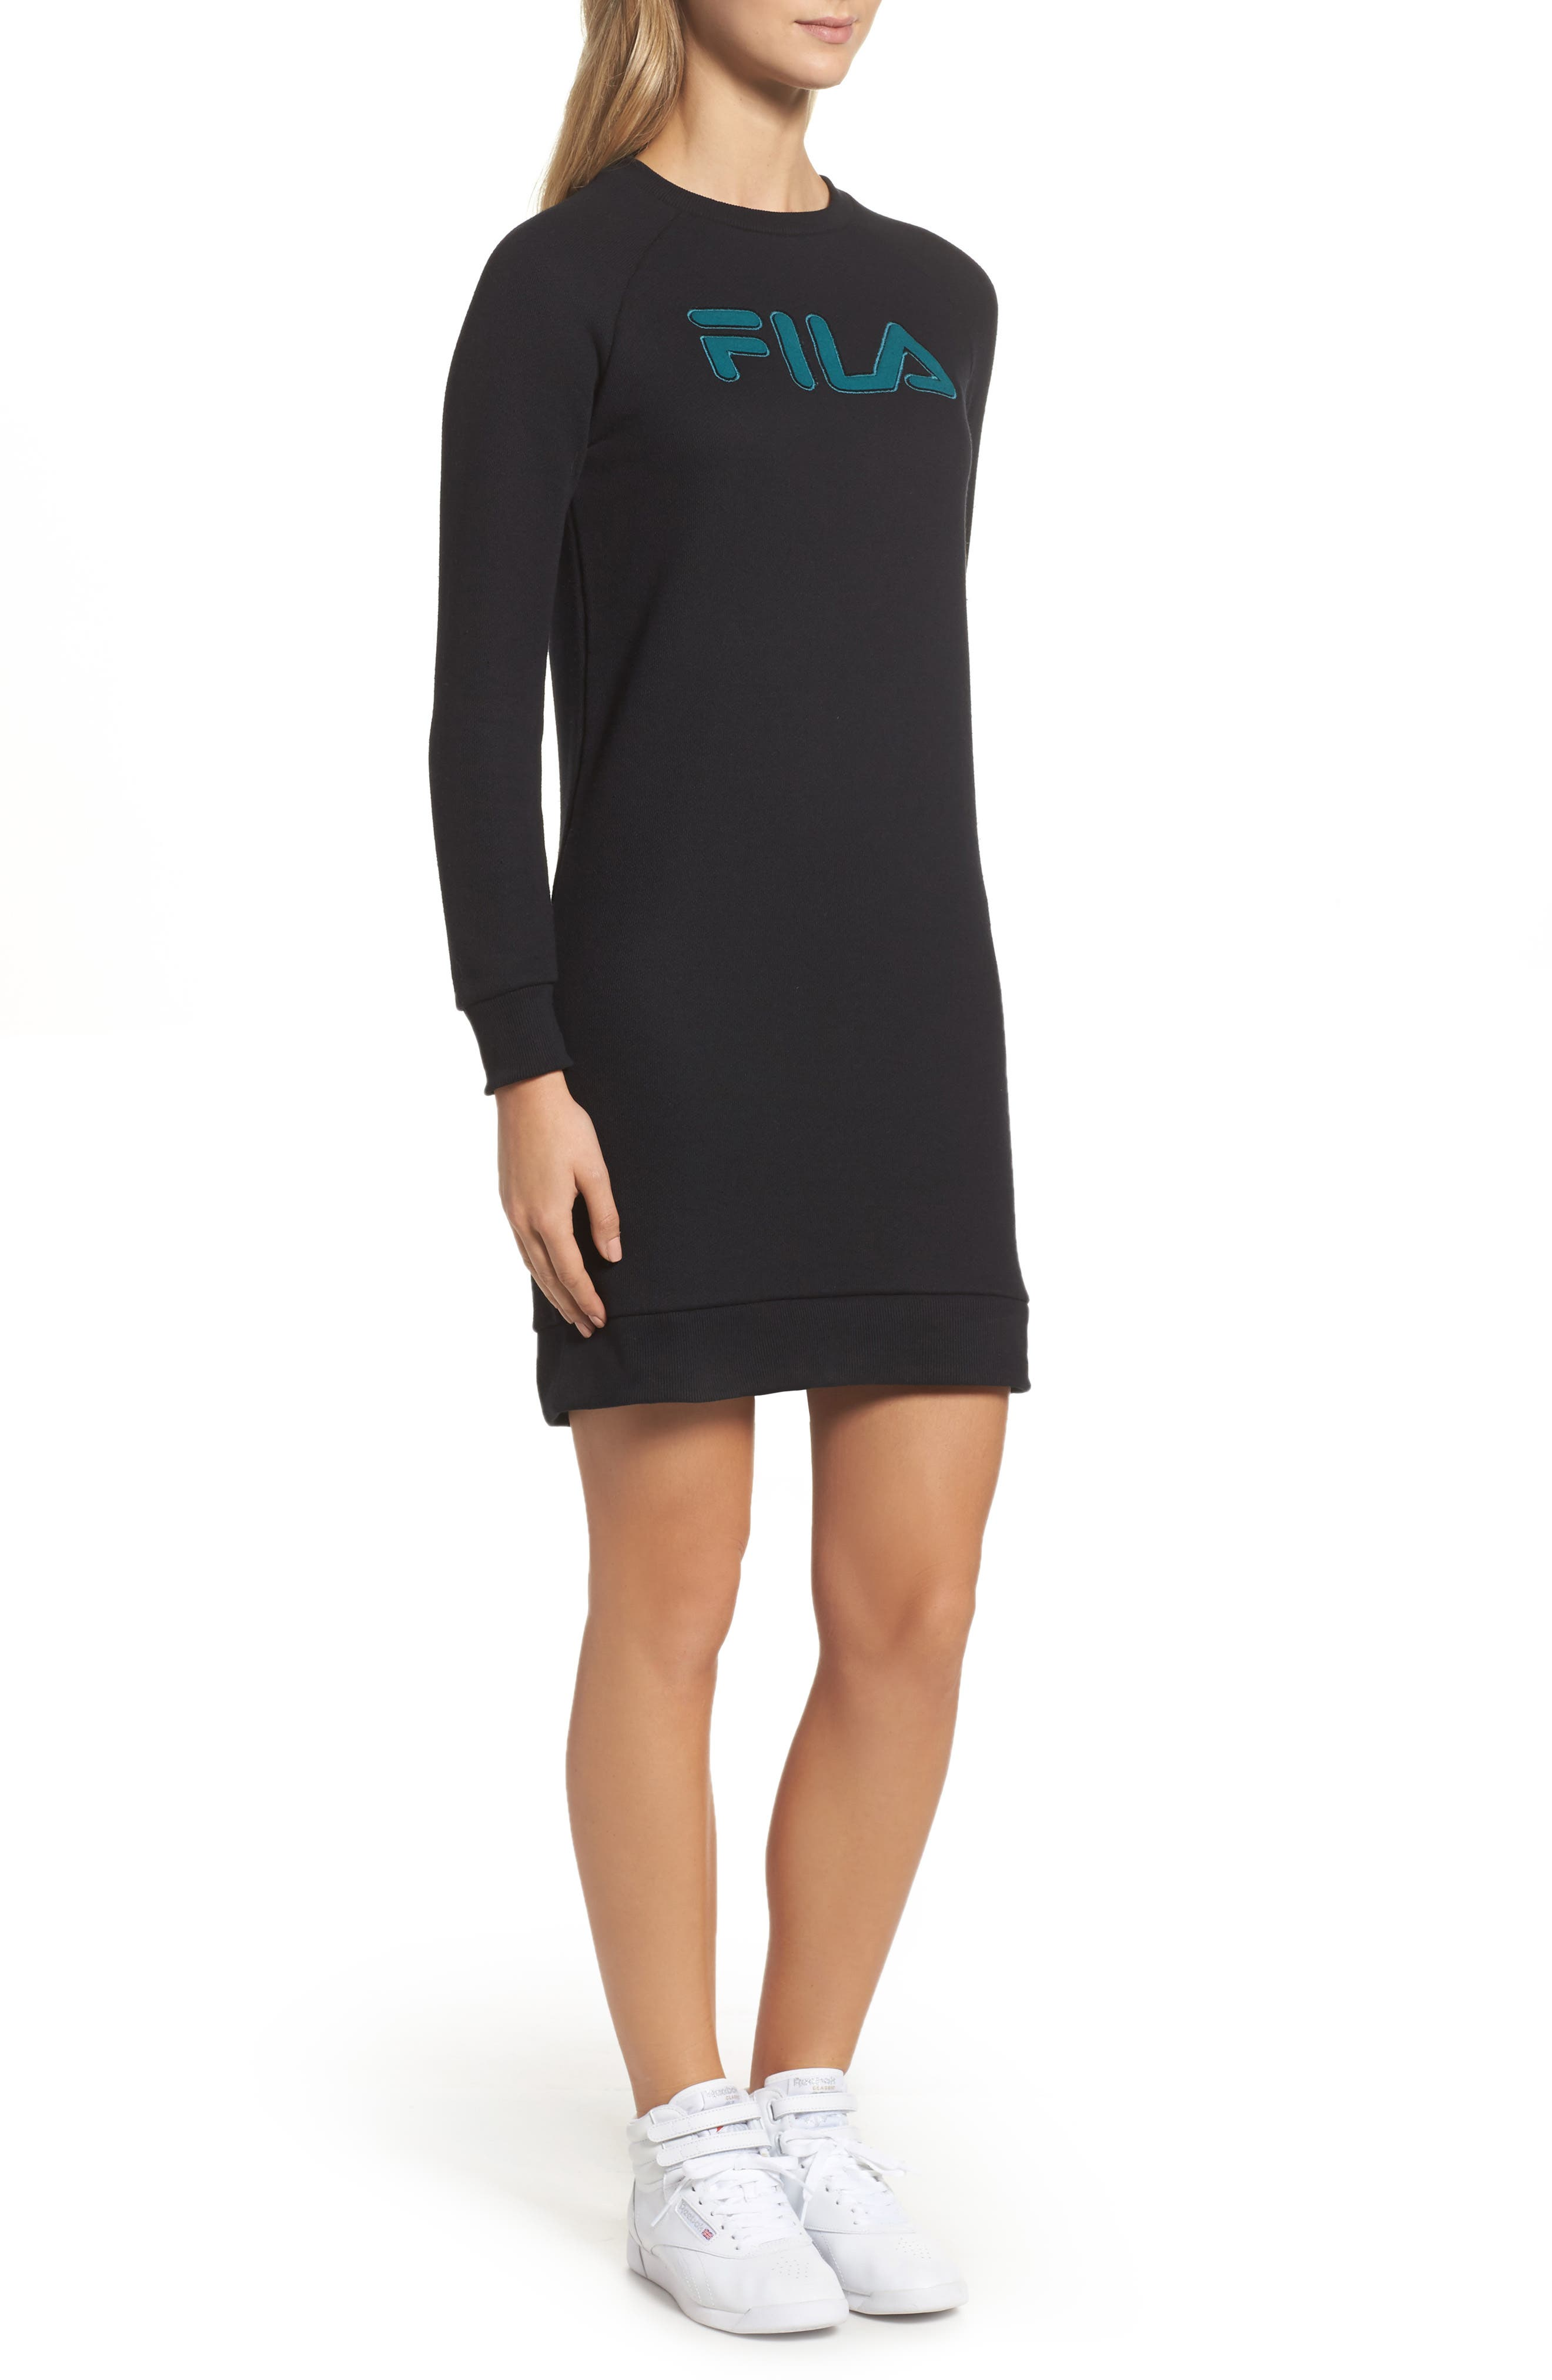 Courtney Sweatshirt Dress,                             Alternate thumbnail 3, color,                             001